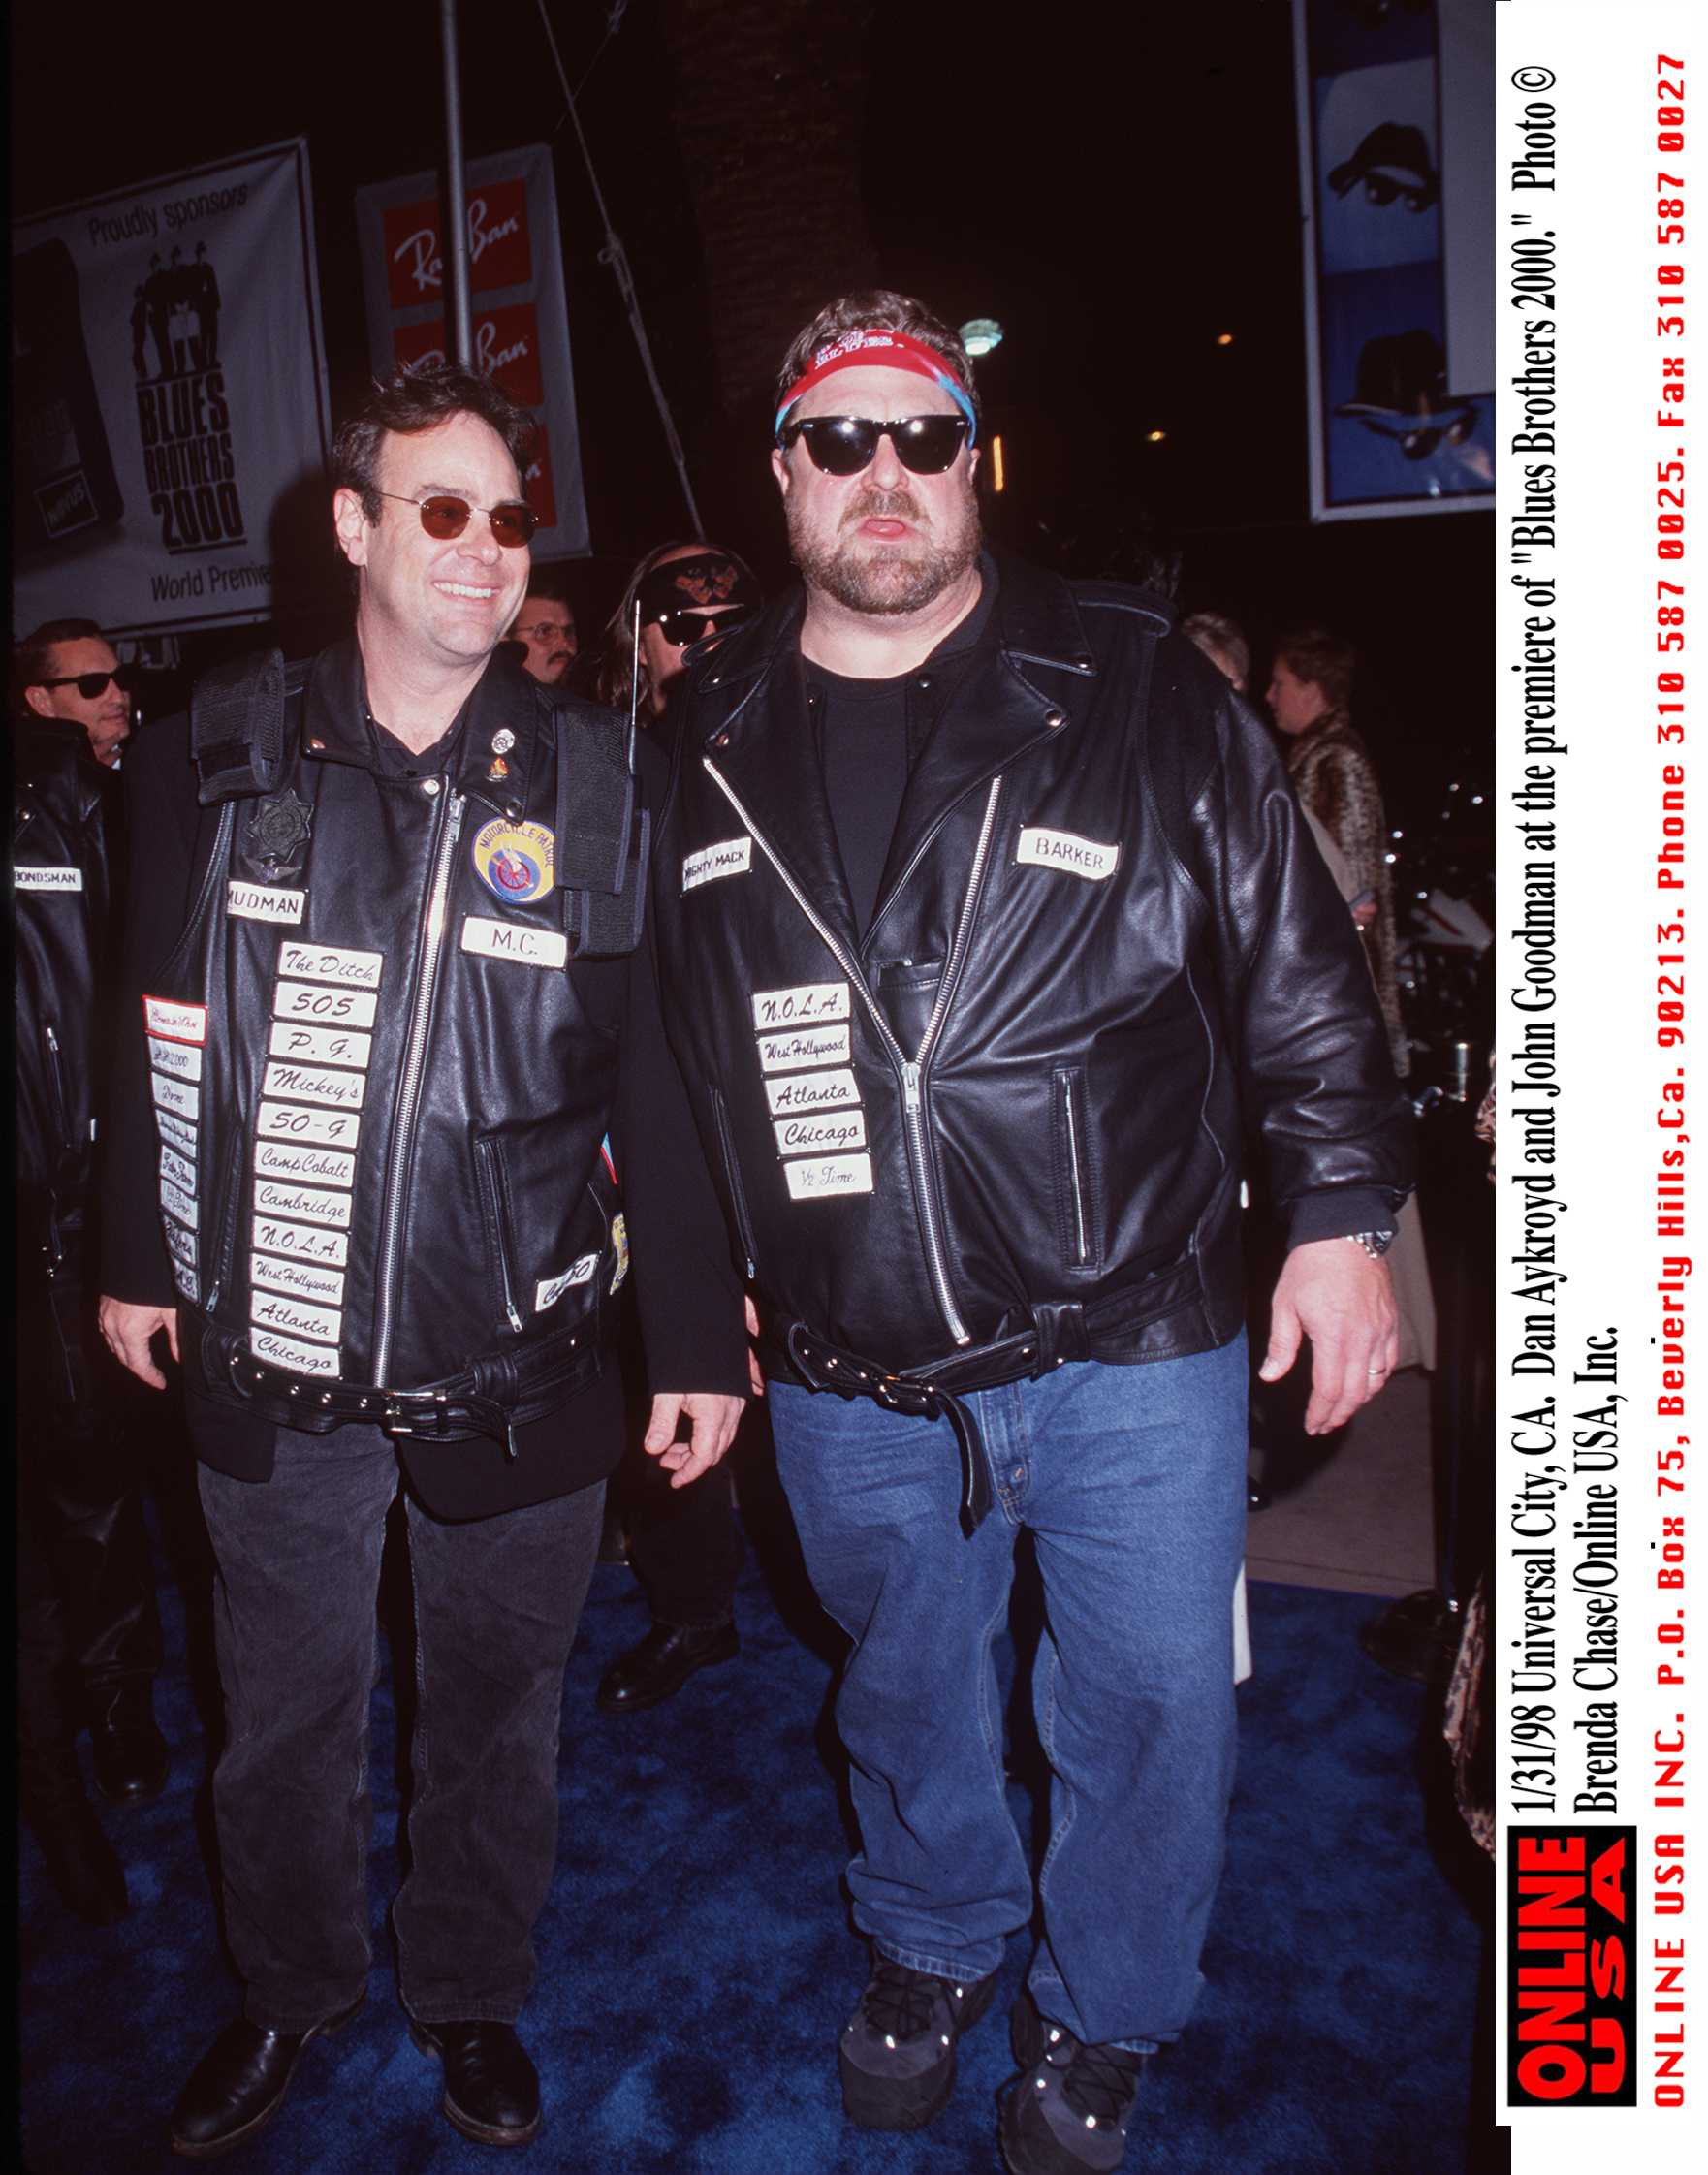 """Dan Aykroyd and John Goodman attend the premiere of """"Blues Brothers 2000"""" 